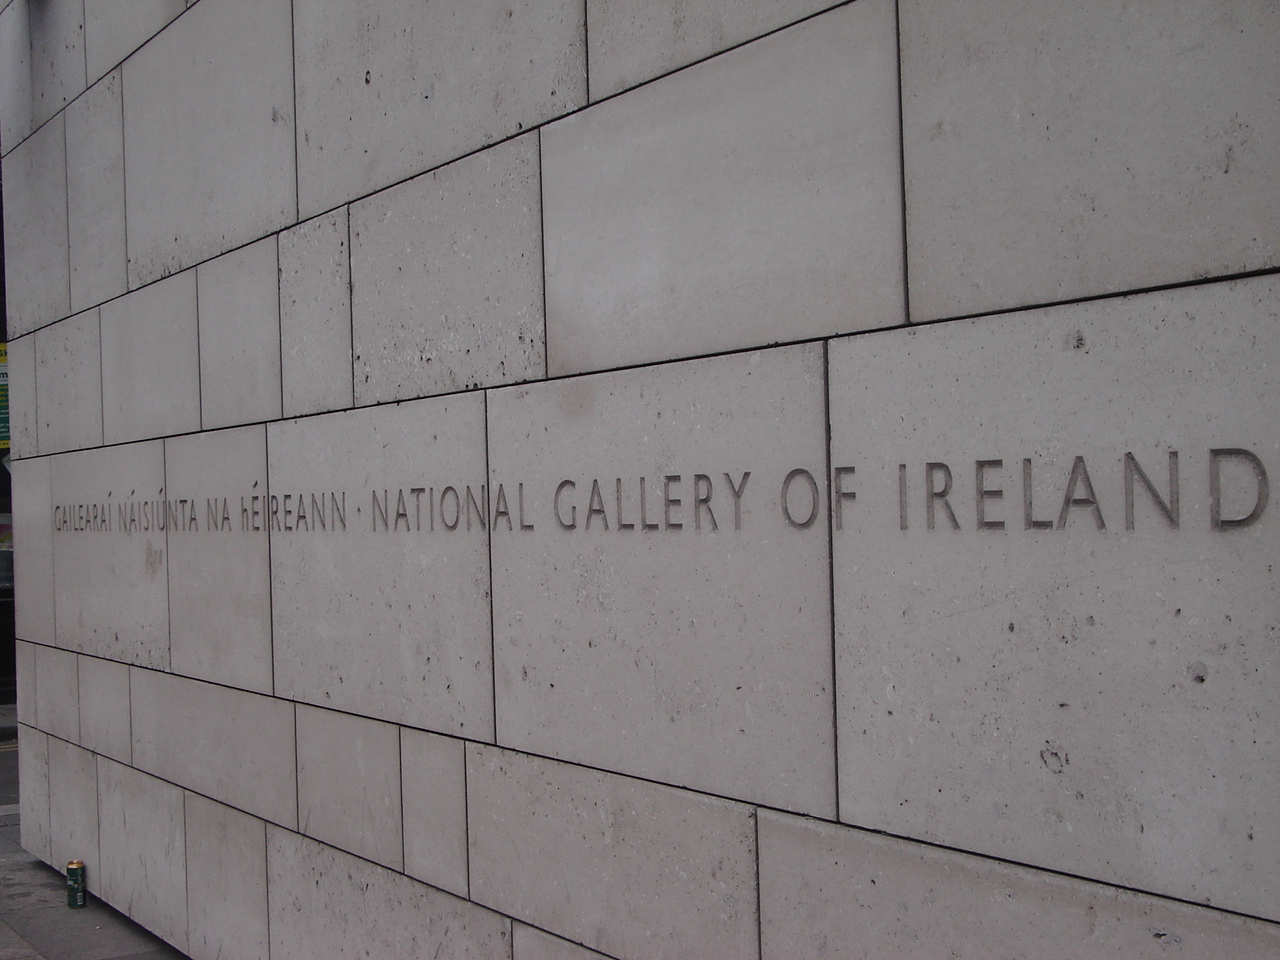 National Gallery Museum Dublin